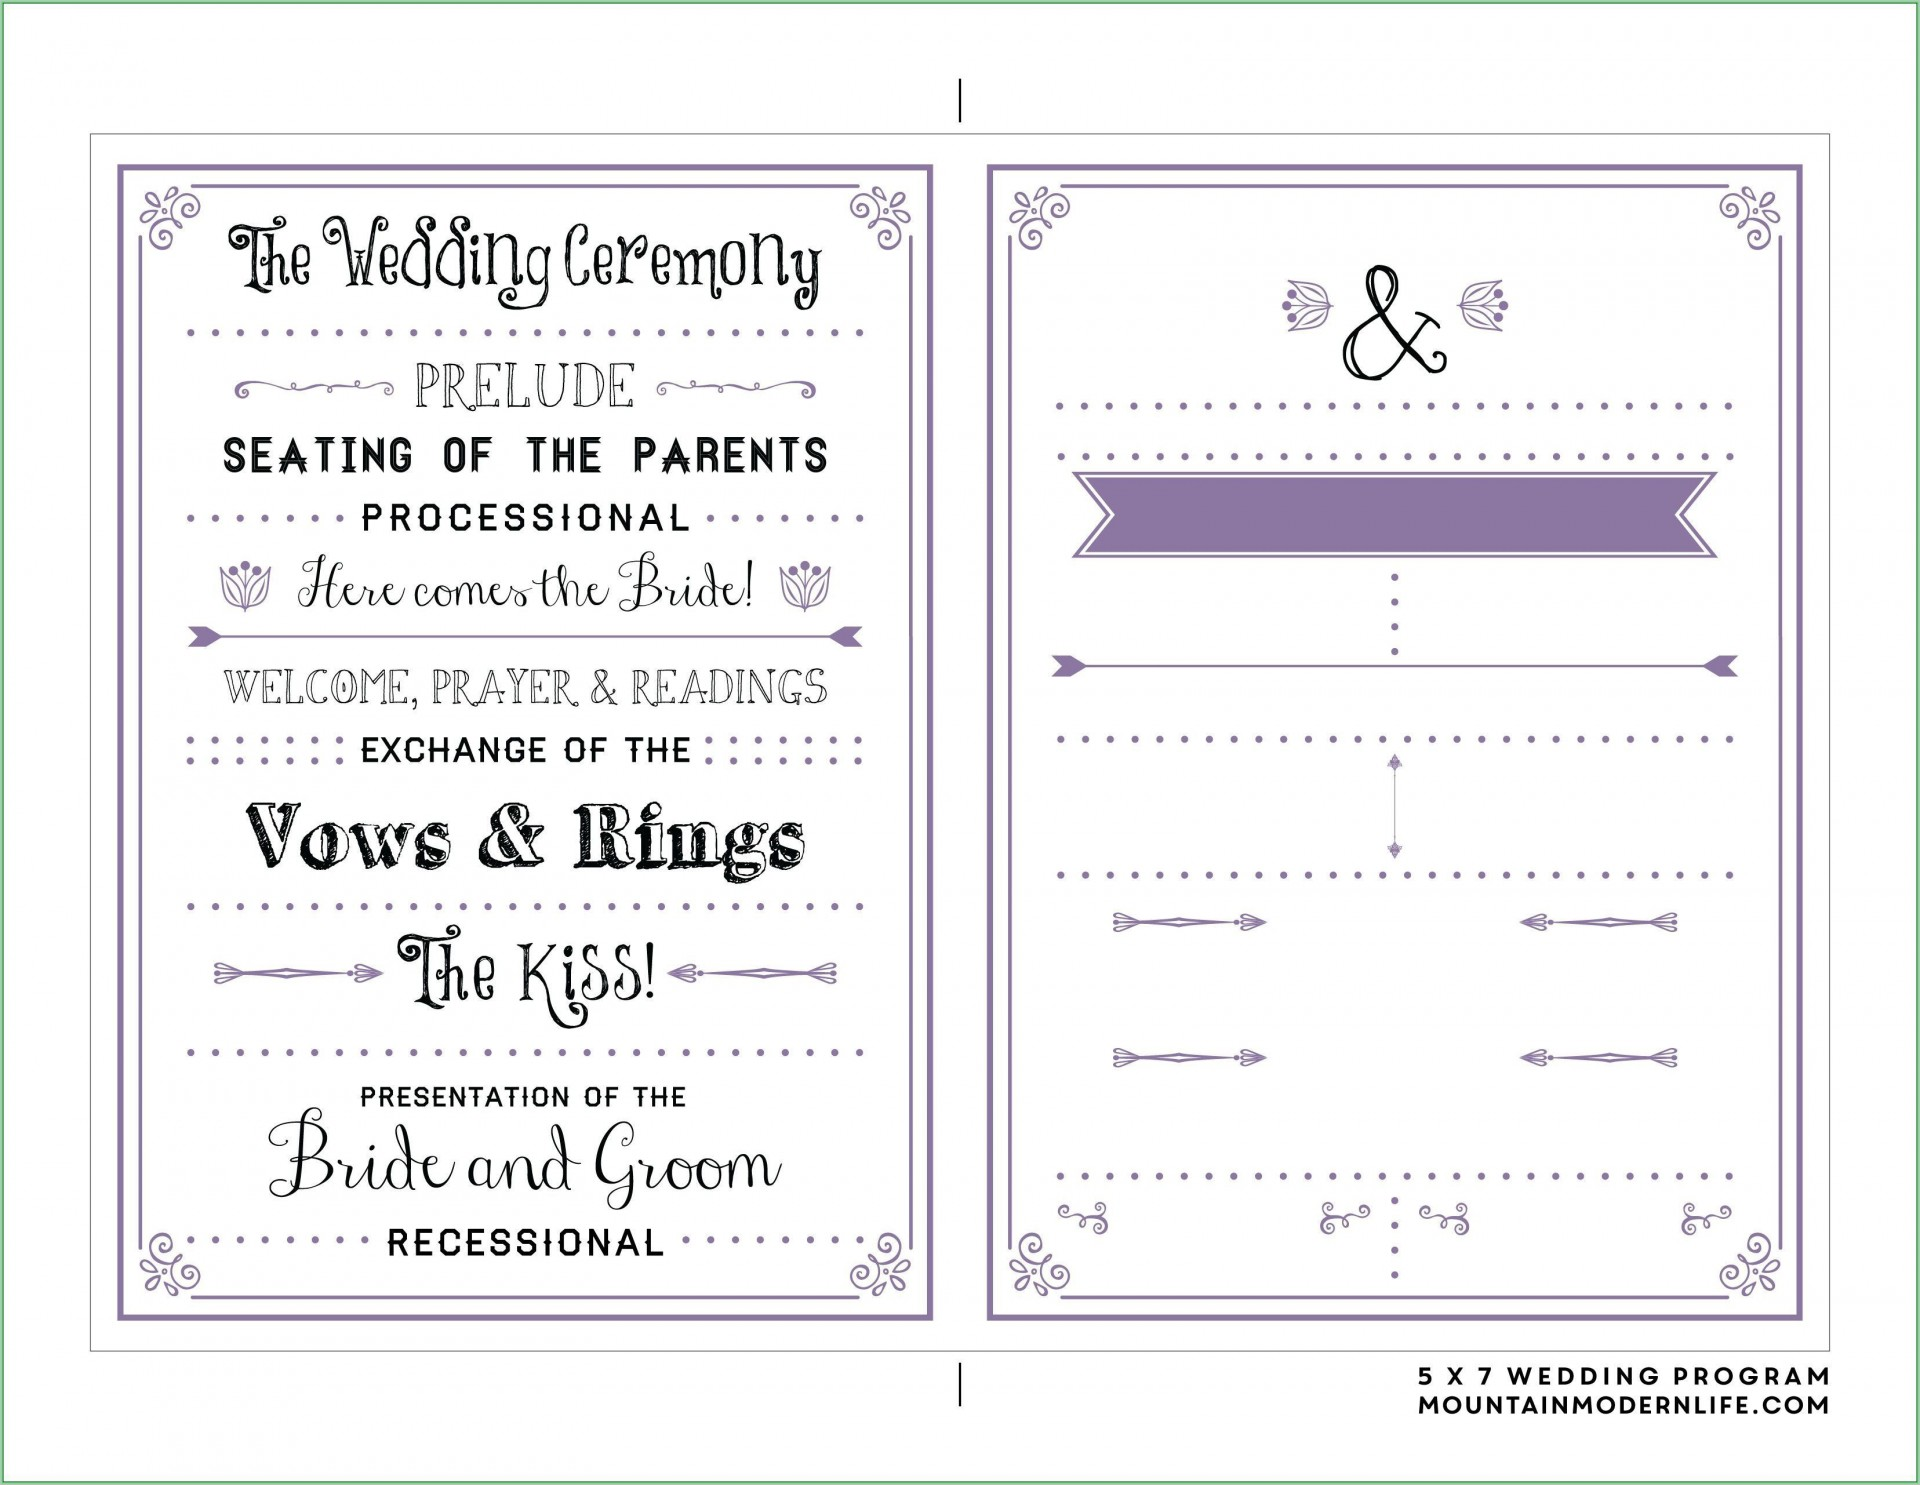 001 Fearsome Wedding Program Fan Template Image  Free Word Paddle Downloadable That Can Be Printed1920